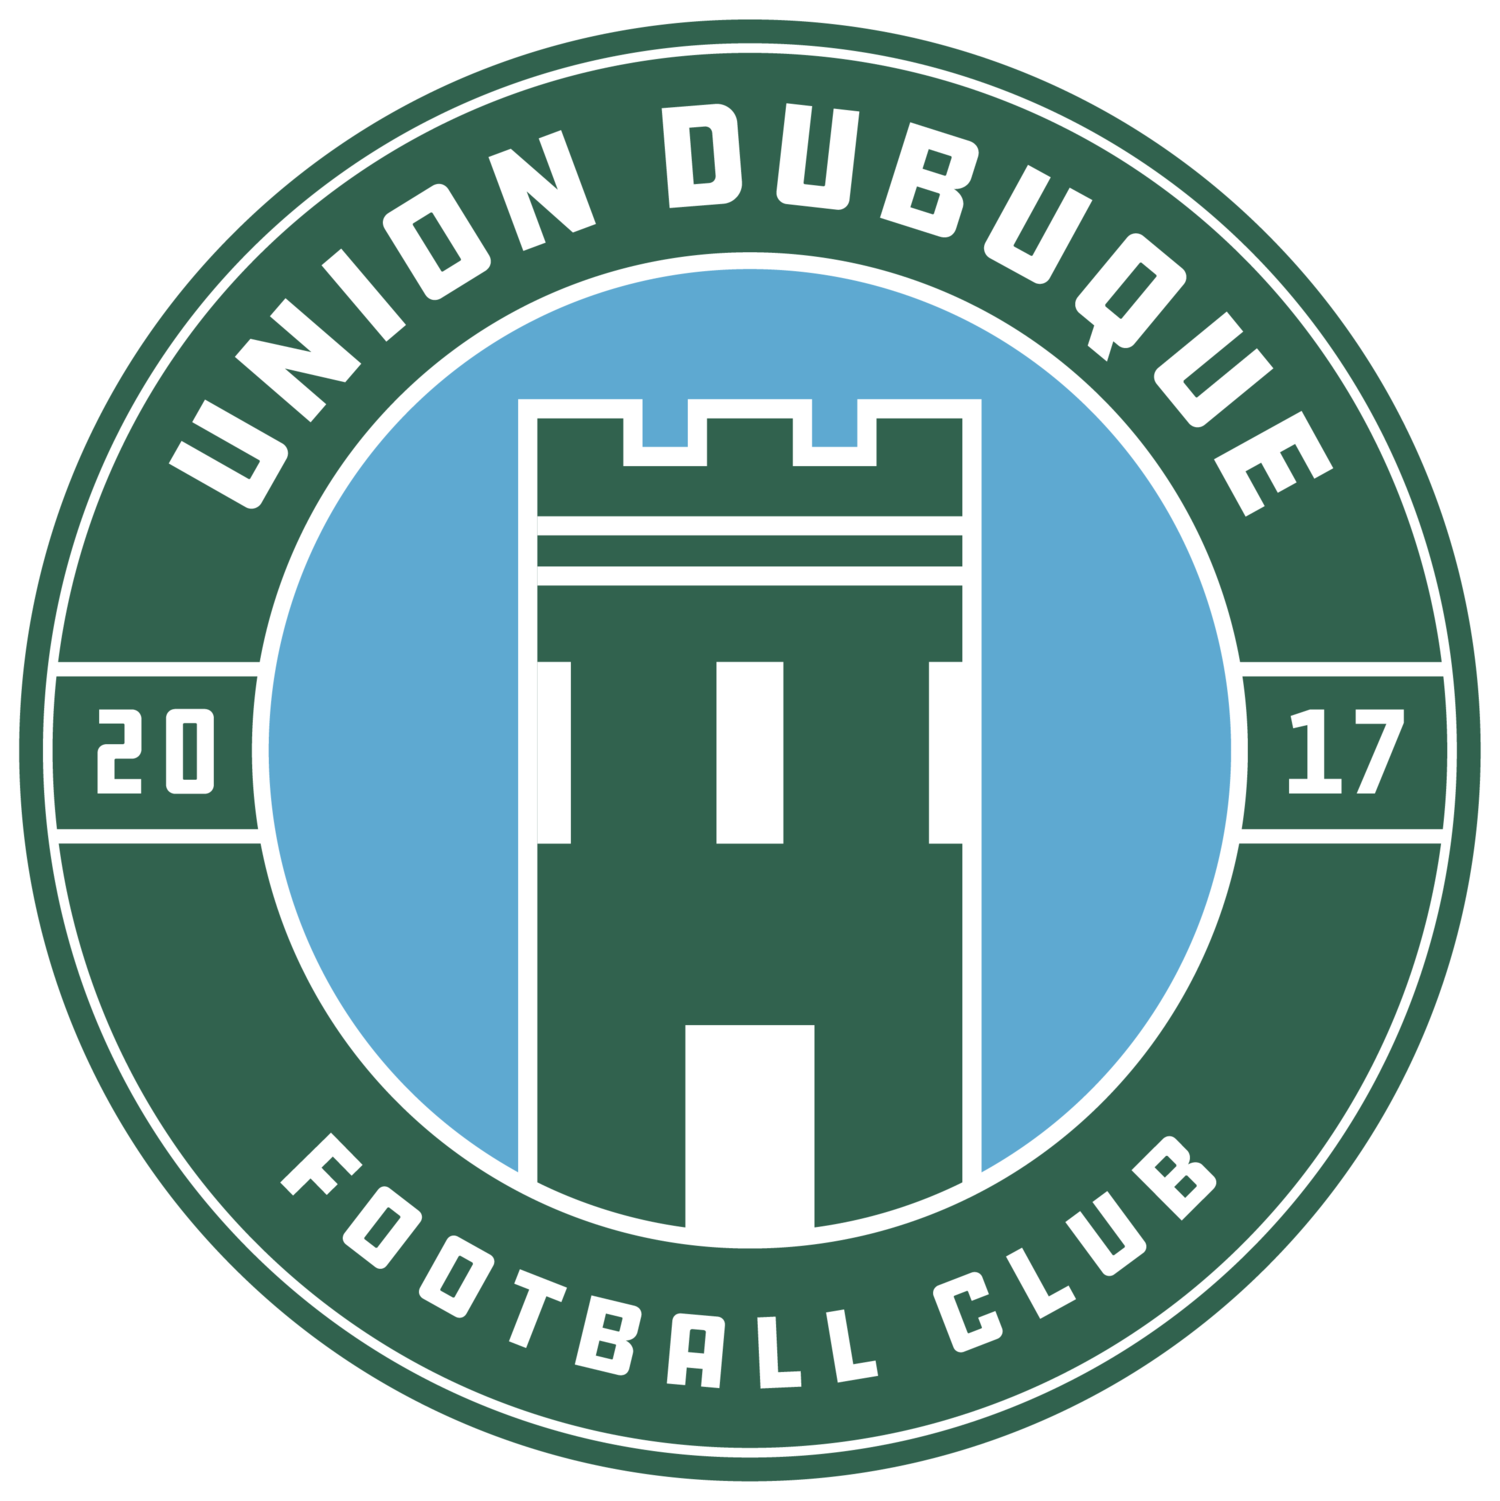 Union Dubuque Football Club